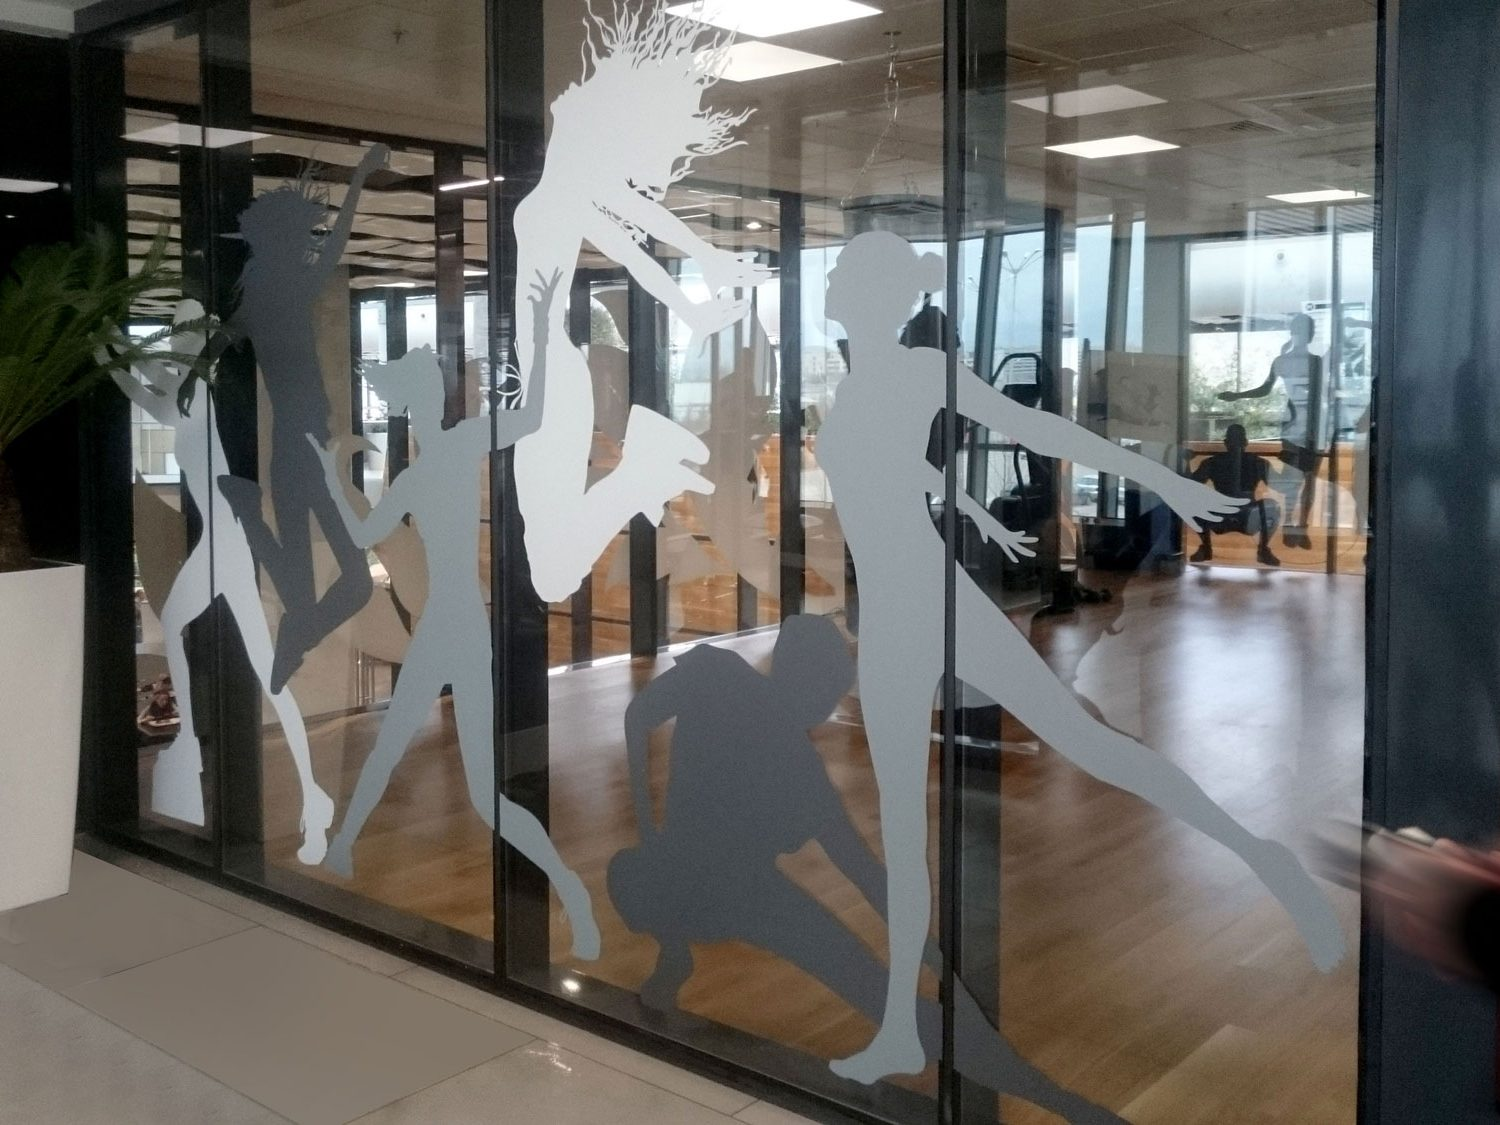 Decorated glass with images of dancing people